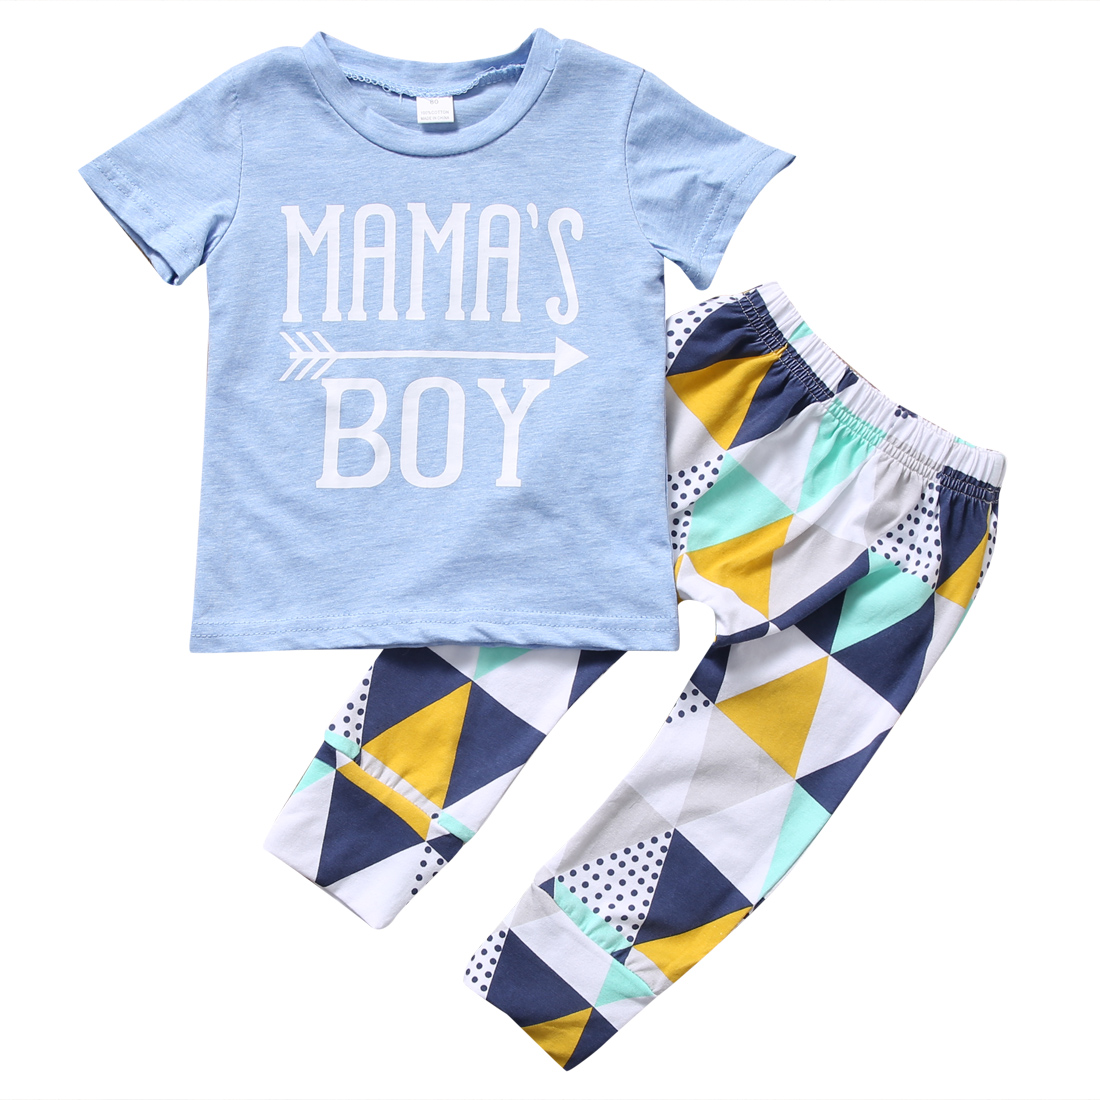 2017 Cute Newborn Baby Boy Clothes Summer Short Sleeve Mama's Boy Cotton T-shirt Tops Pant 2PCS Outfit Toddler Kids Clothing Set 2017 newborn baby boy clothes summer short sleeve mama s boy cotton t shirt tops pant 2pcs outfit toddler kids clothing set